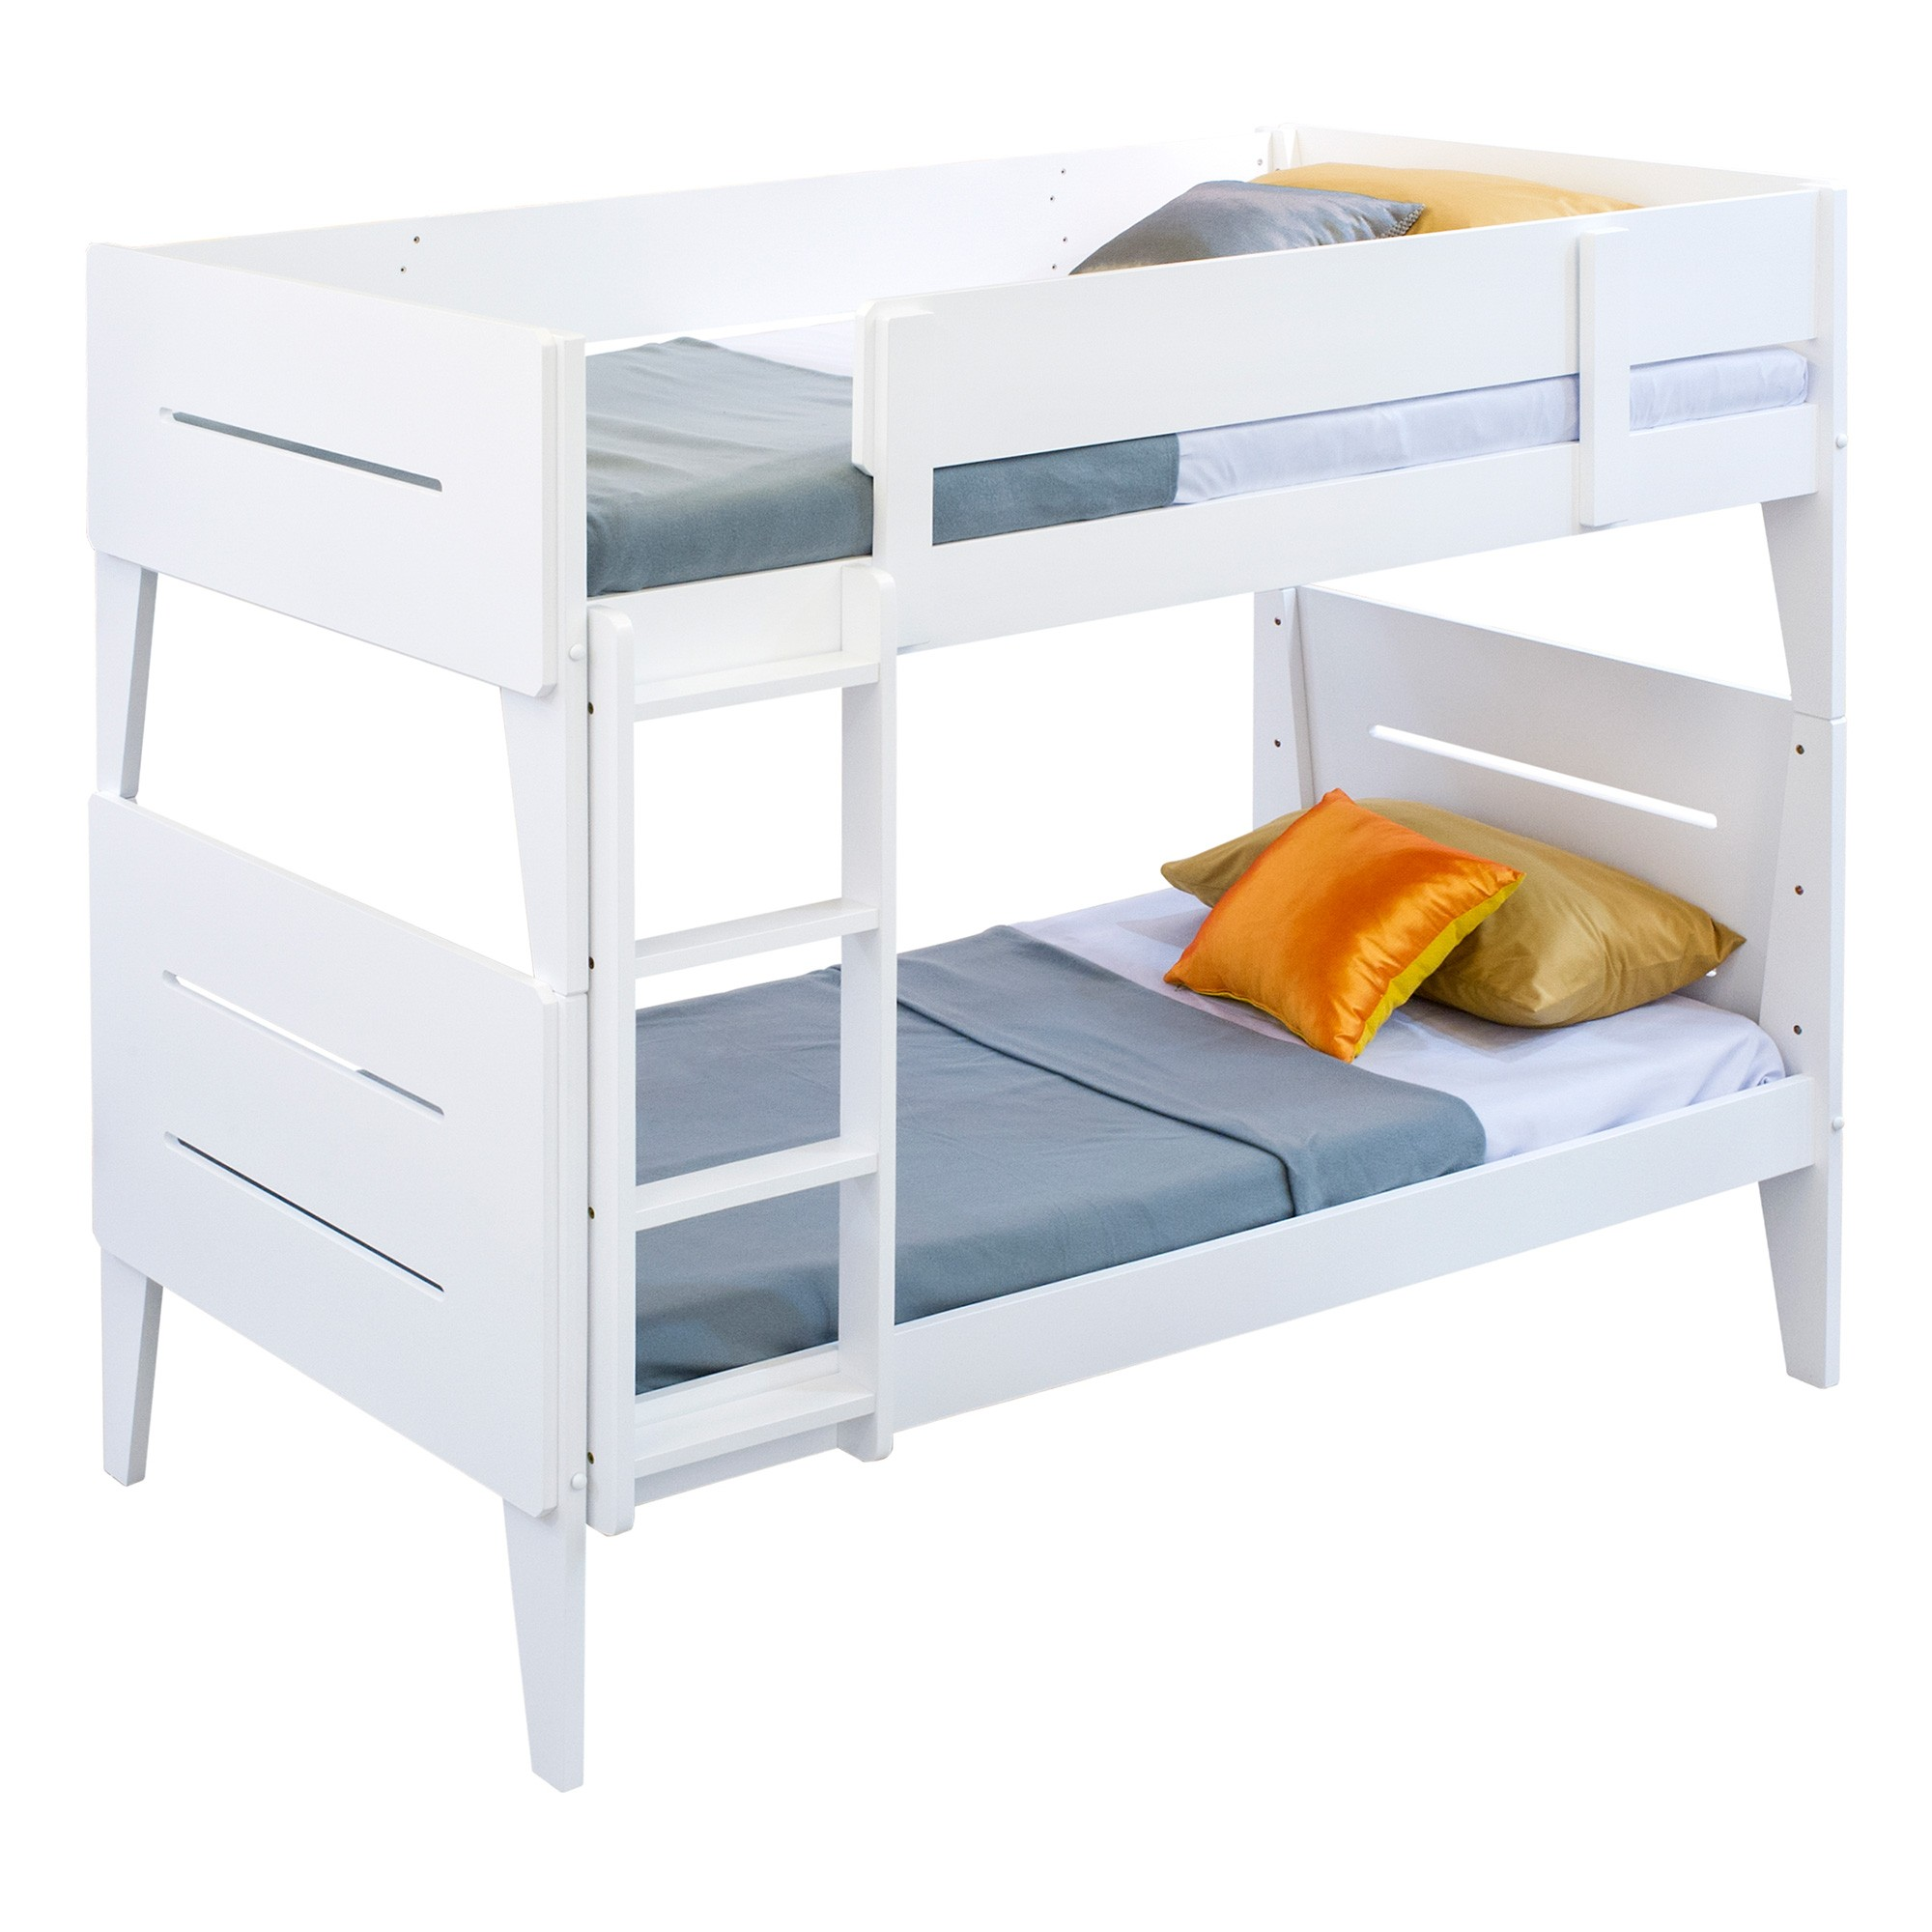 Antero Timber Bunk Bed, Single